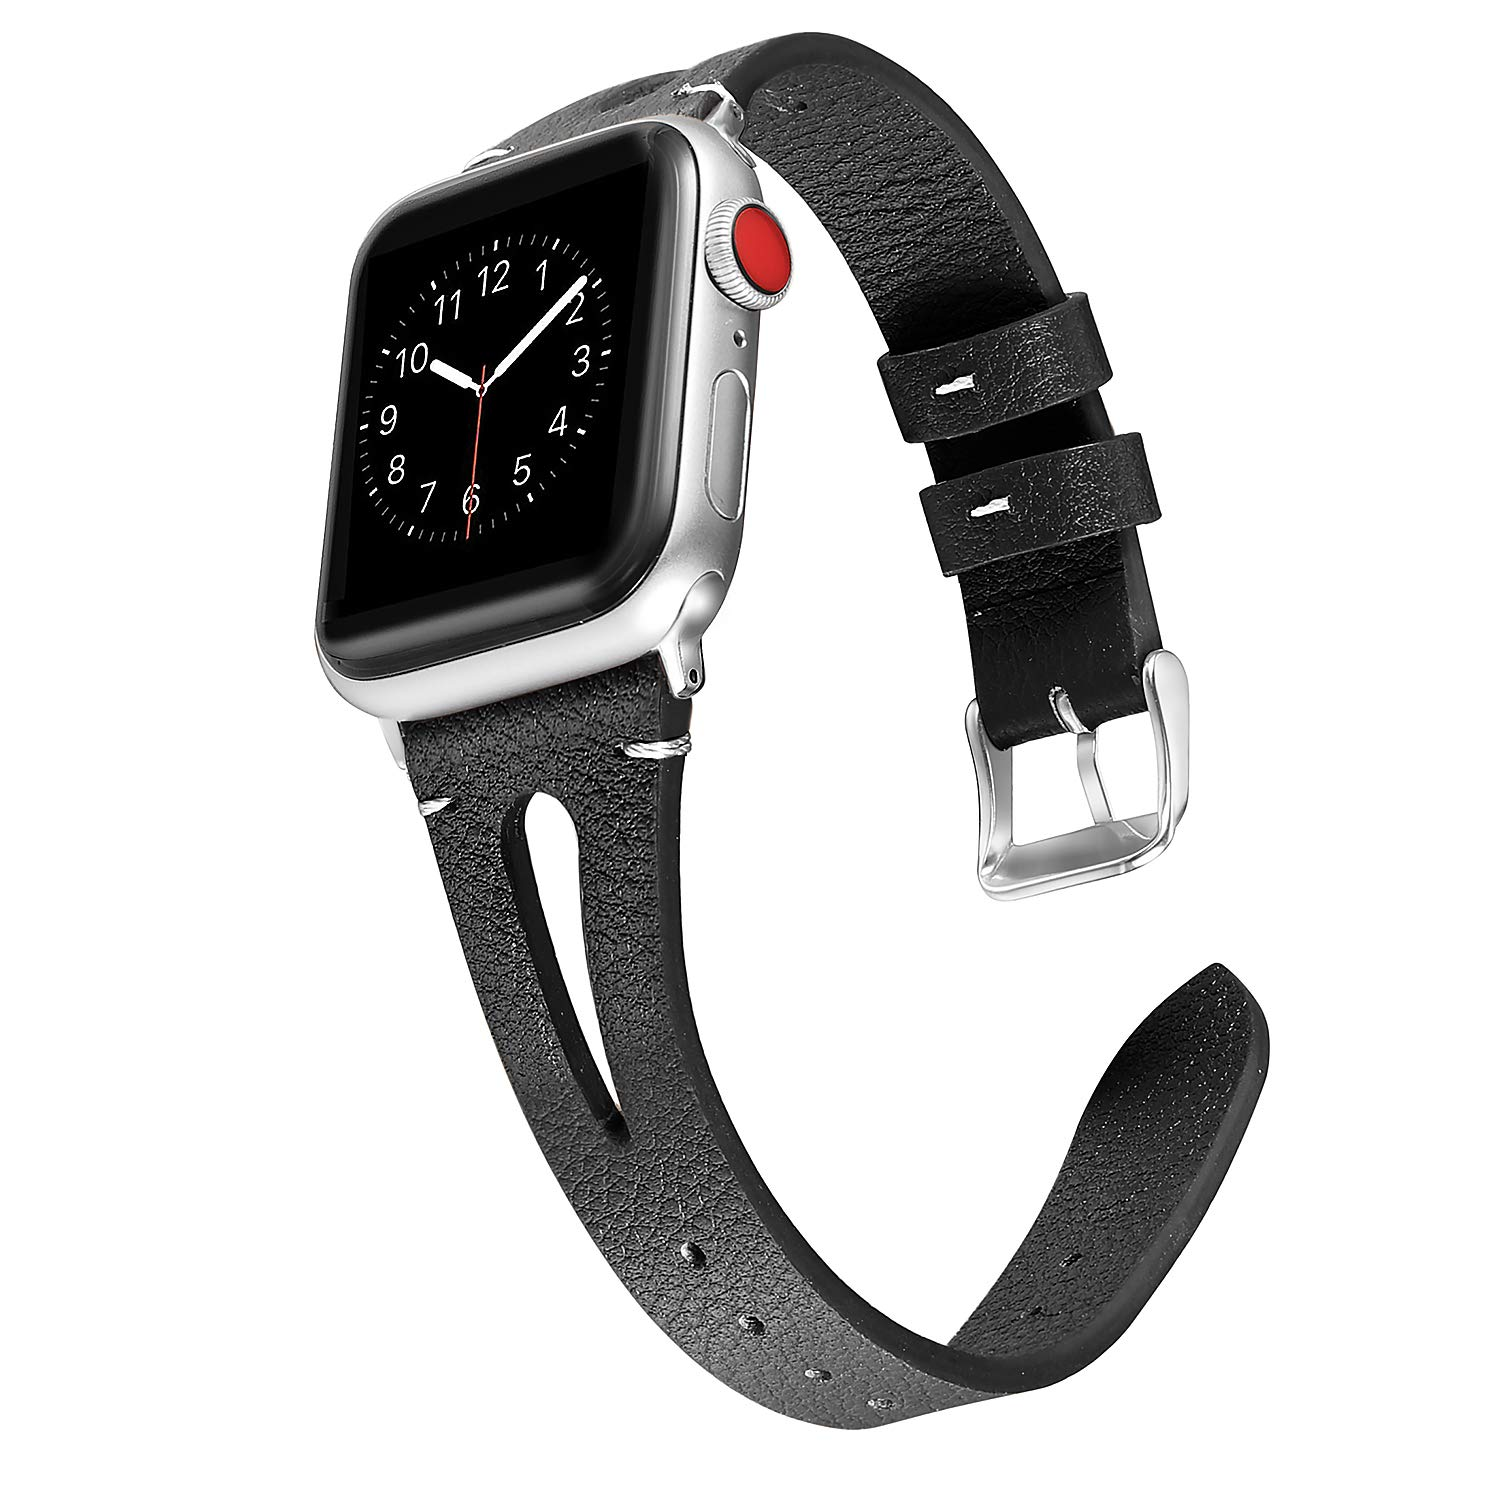 Secbolt Leather Bands Compatible with Apple Watch Band 38mm 40mm iwatch Series 4 3 2 1, Slim Strap with Breathable Hole Replacement Wristband Women, Black by Secbolt